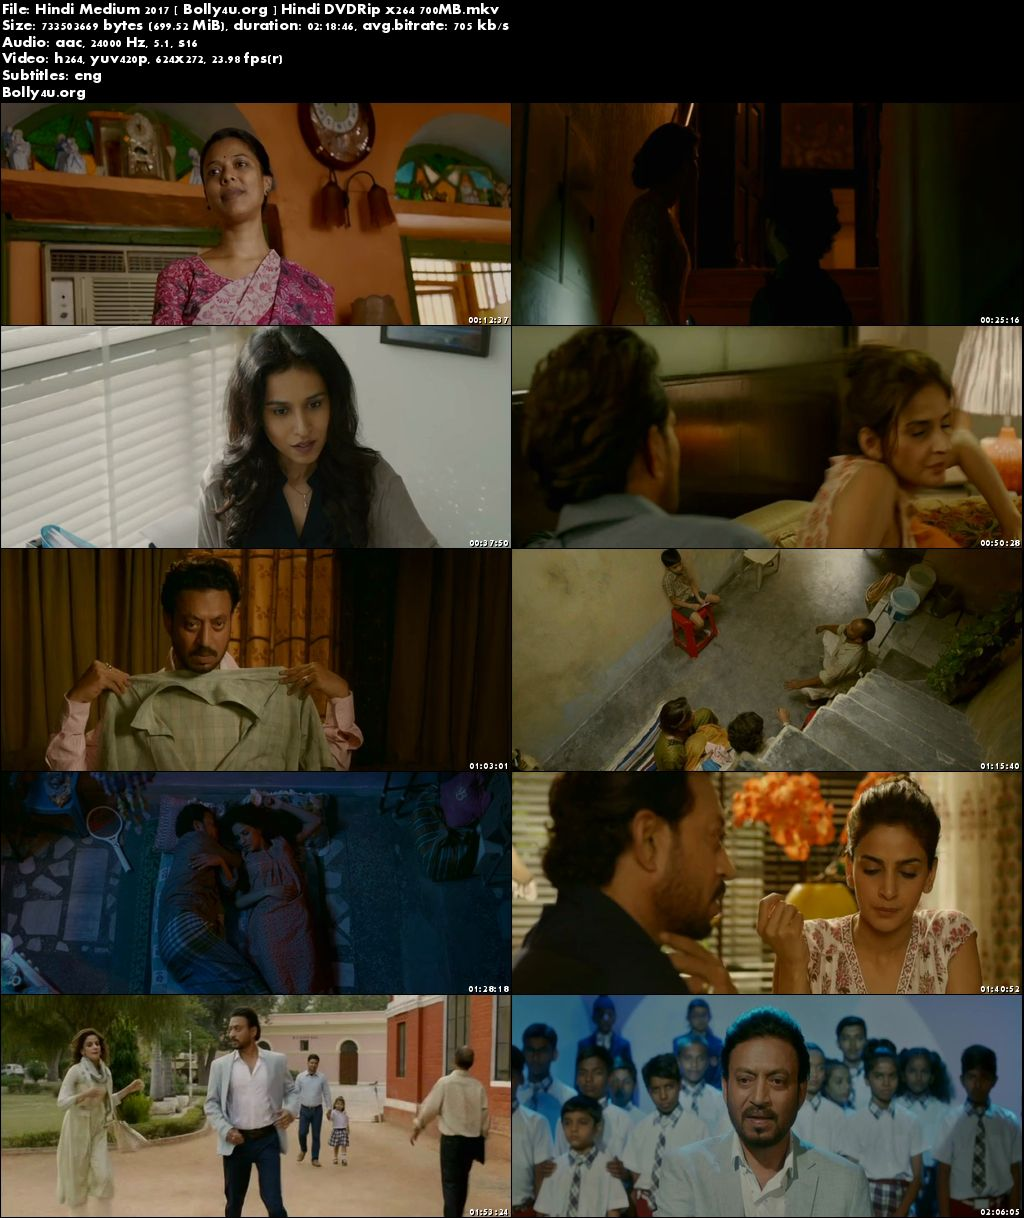 Hindi Medium 2017 DVDRip 400MB Full Hindi Movie Download 480p